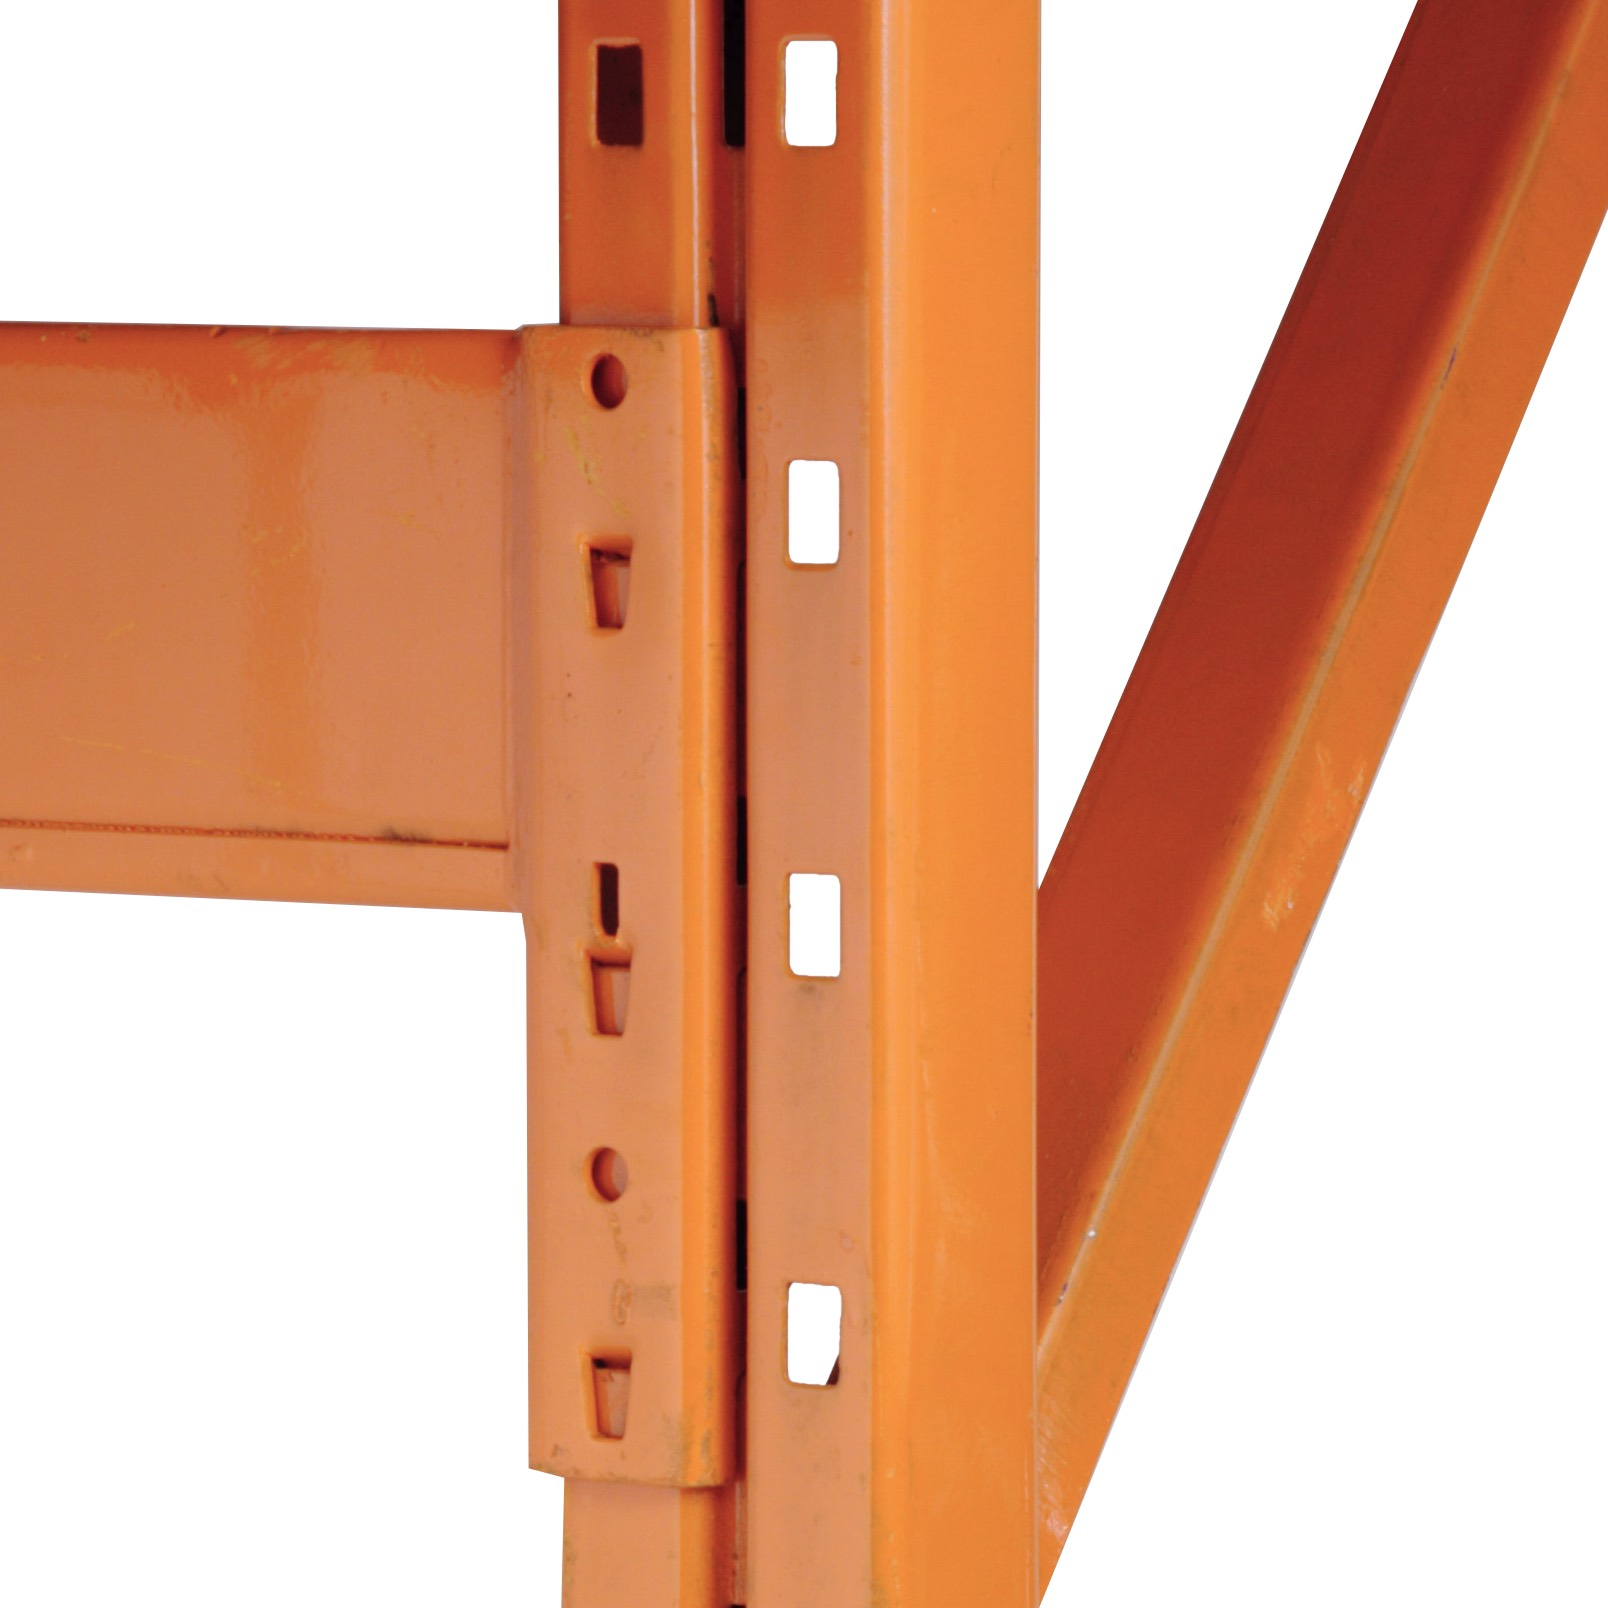 RediRack beam connected to upright frame